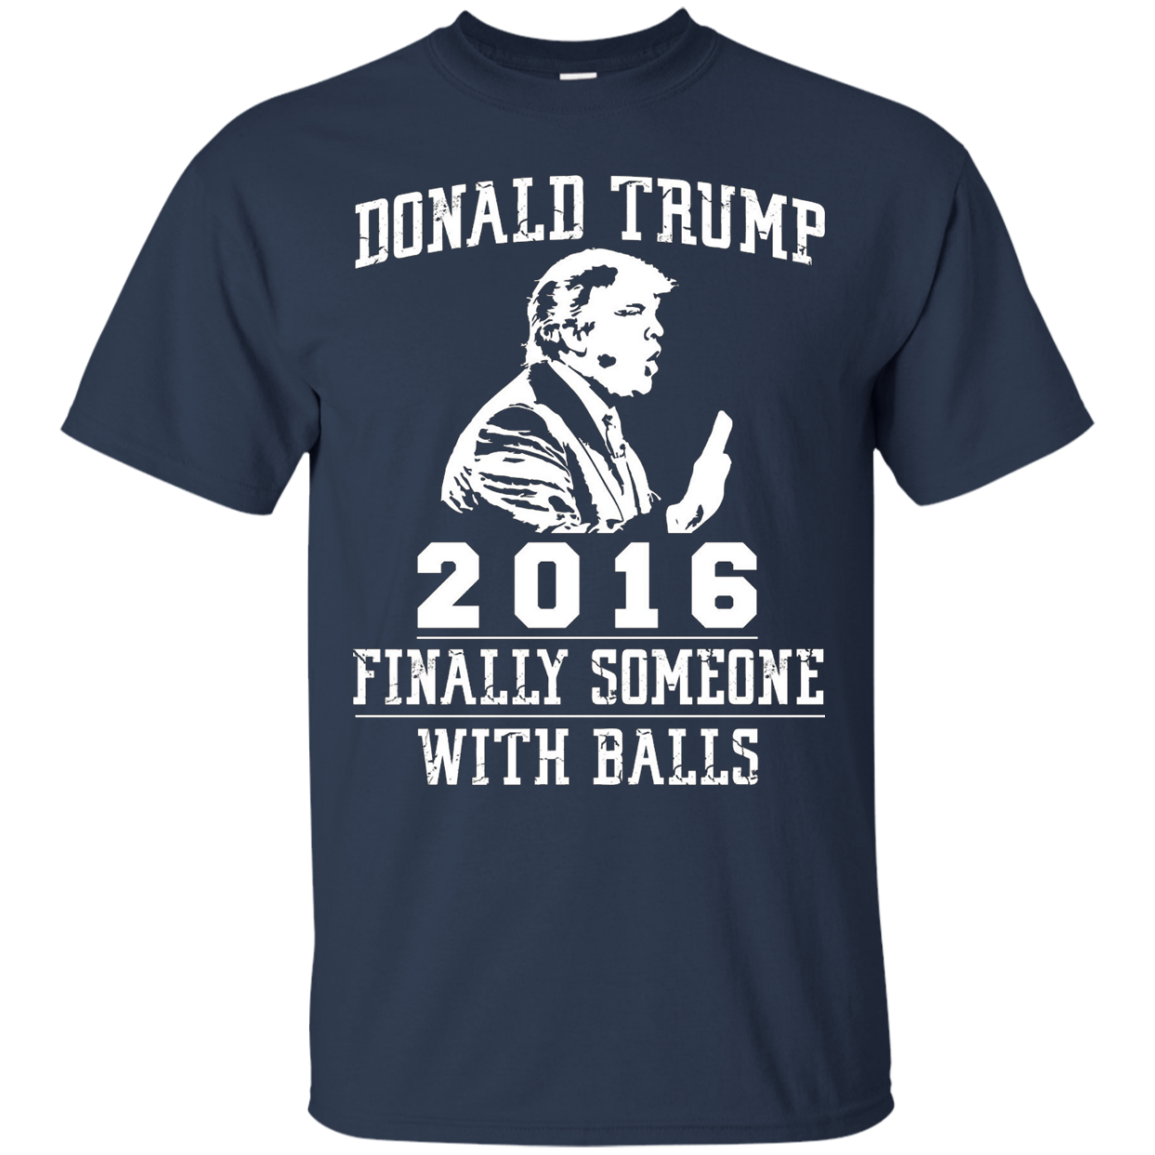 Donald Trump Finally Someone Balls T-shirts For Prison 2016